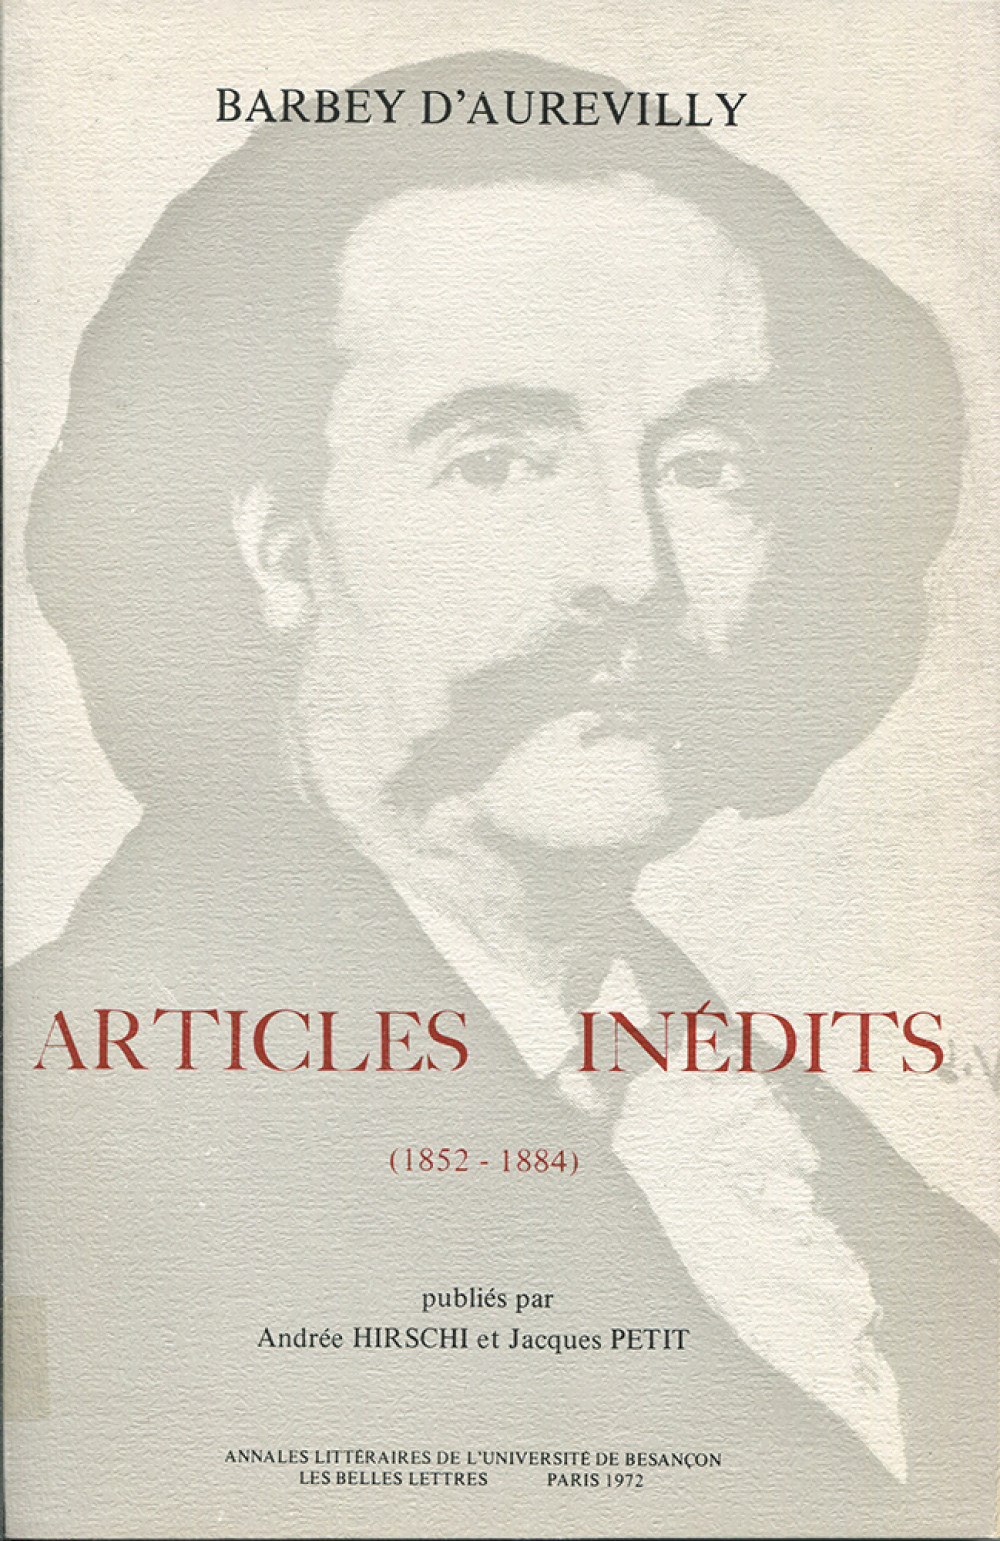 Barbey d'Aurevilly. Articles inédits (1852-1884)